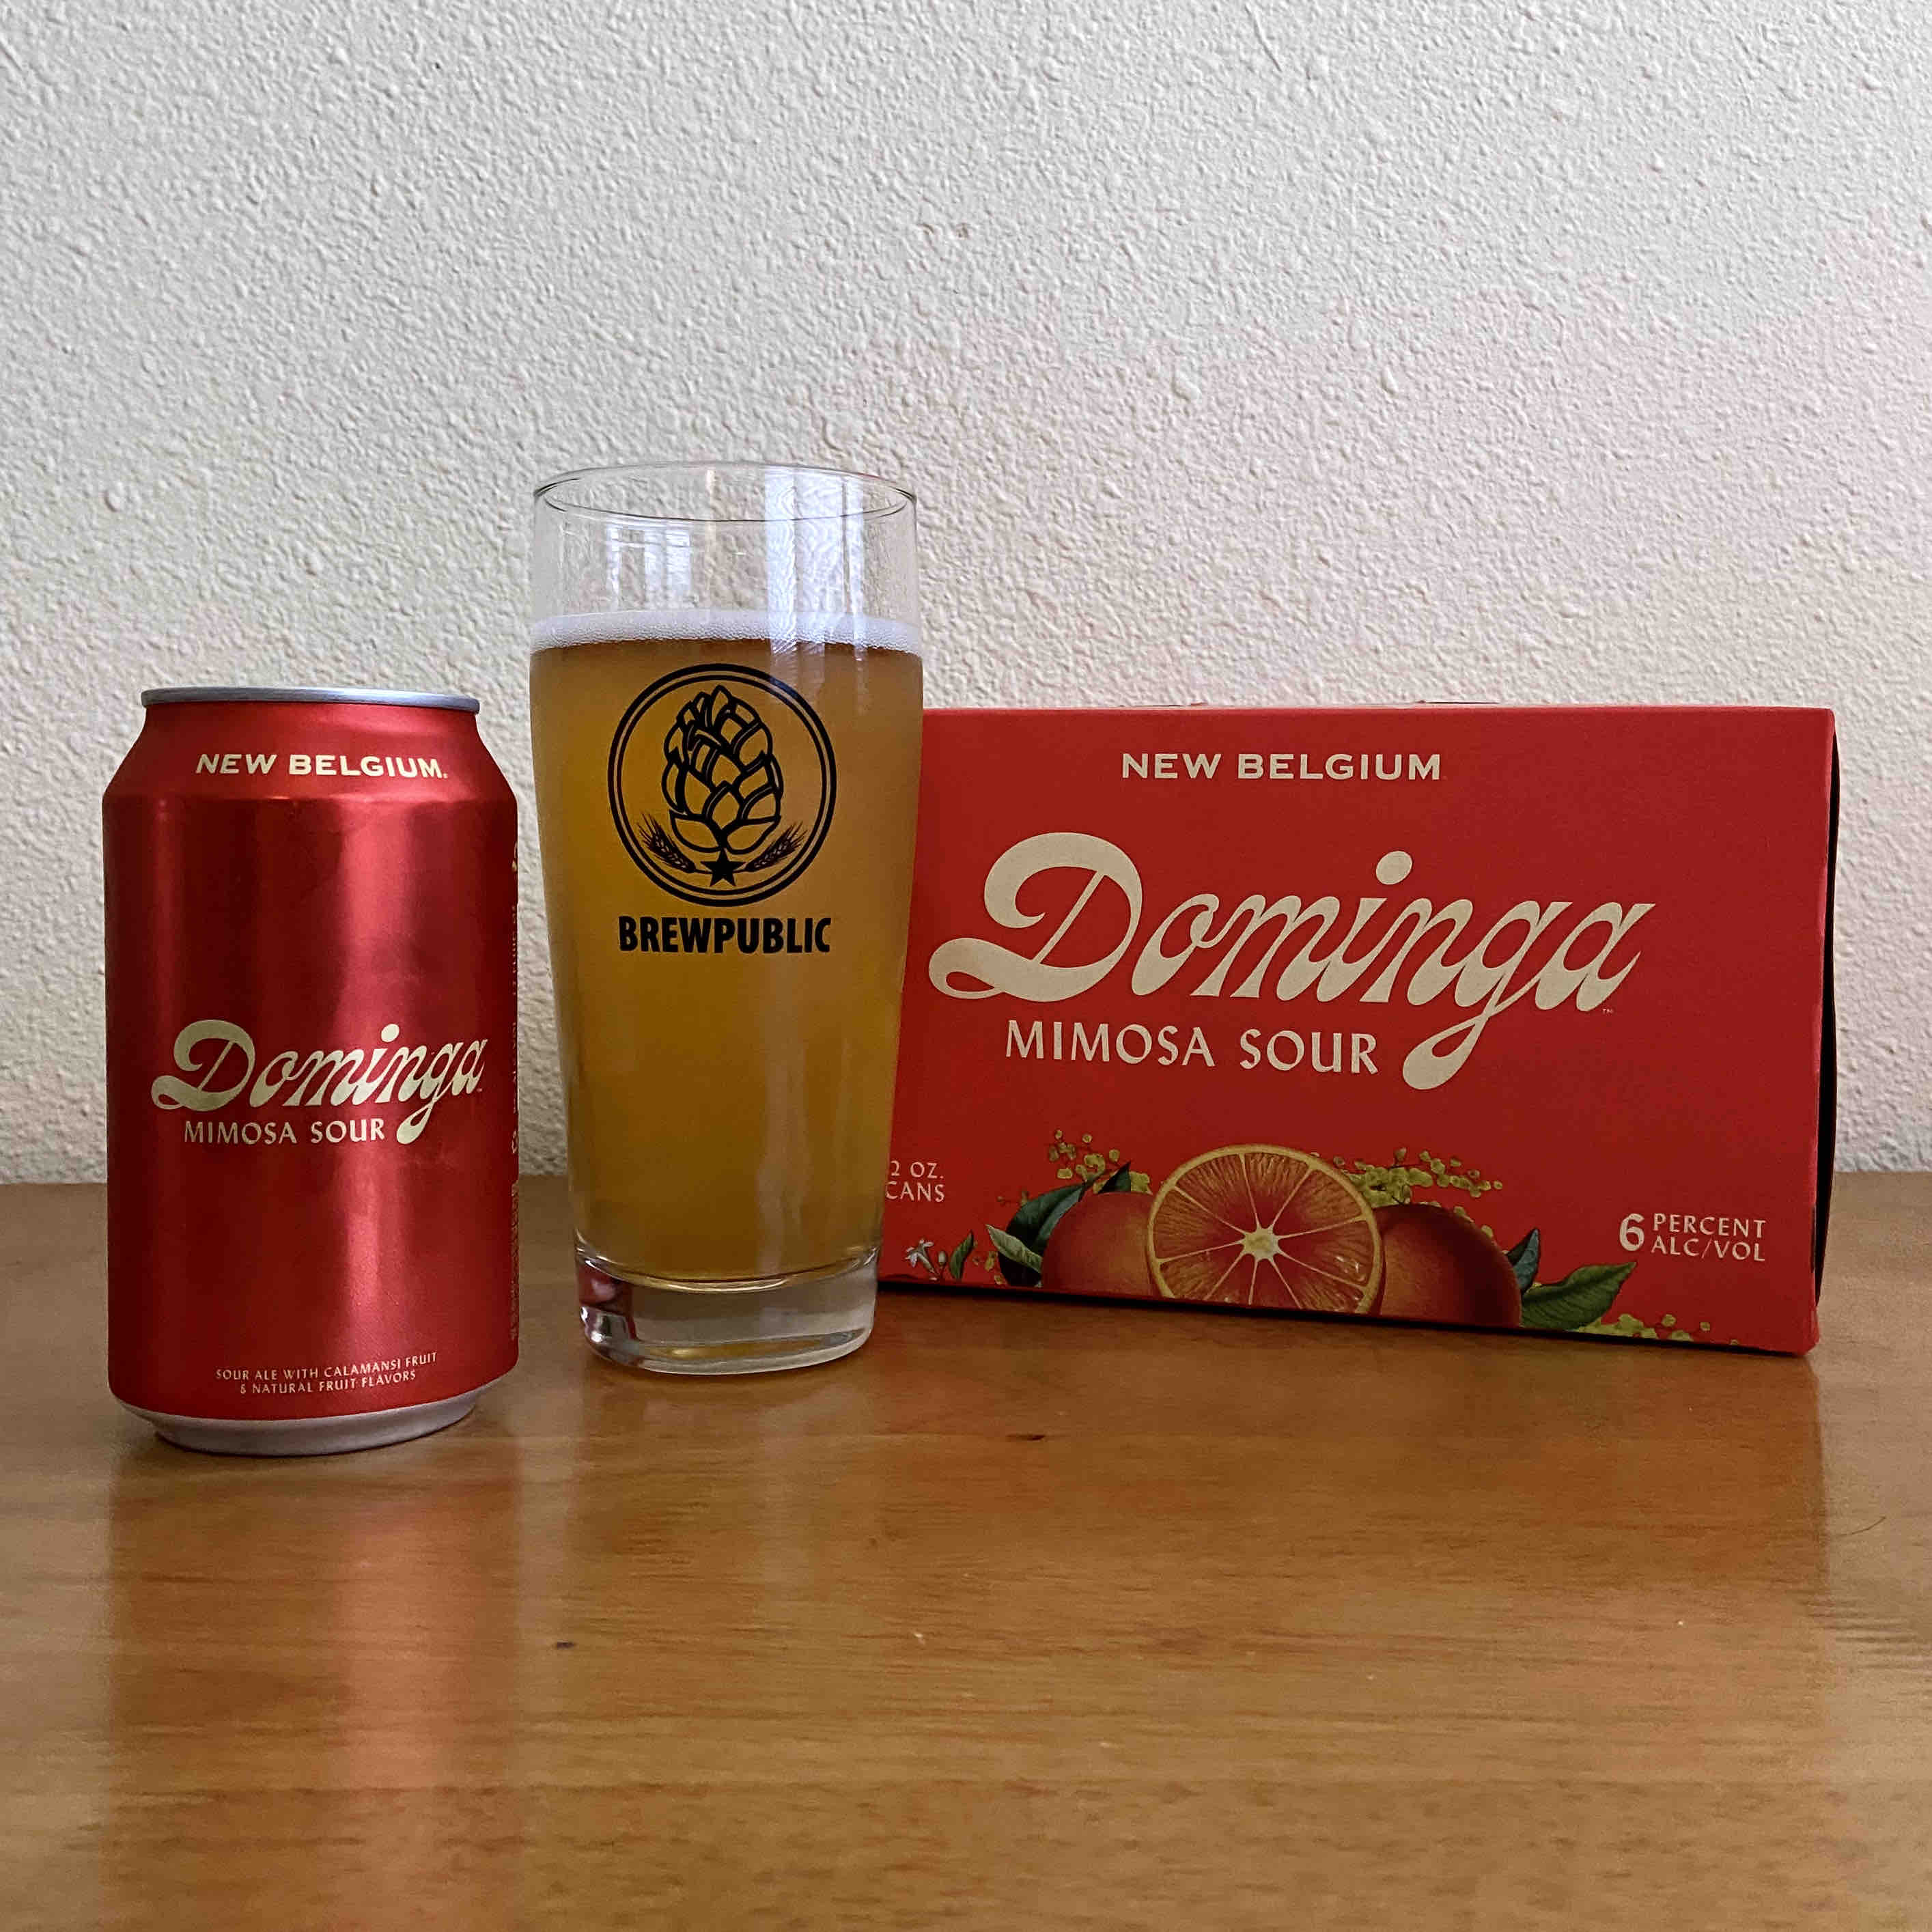 Dominga is a new citrus sour ale from New Belgium Brewing.